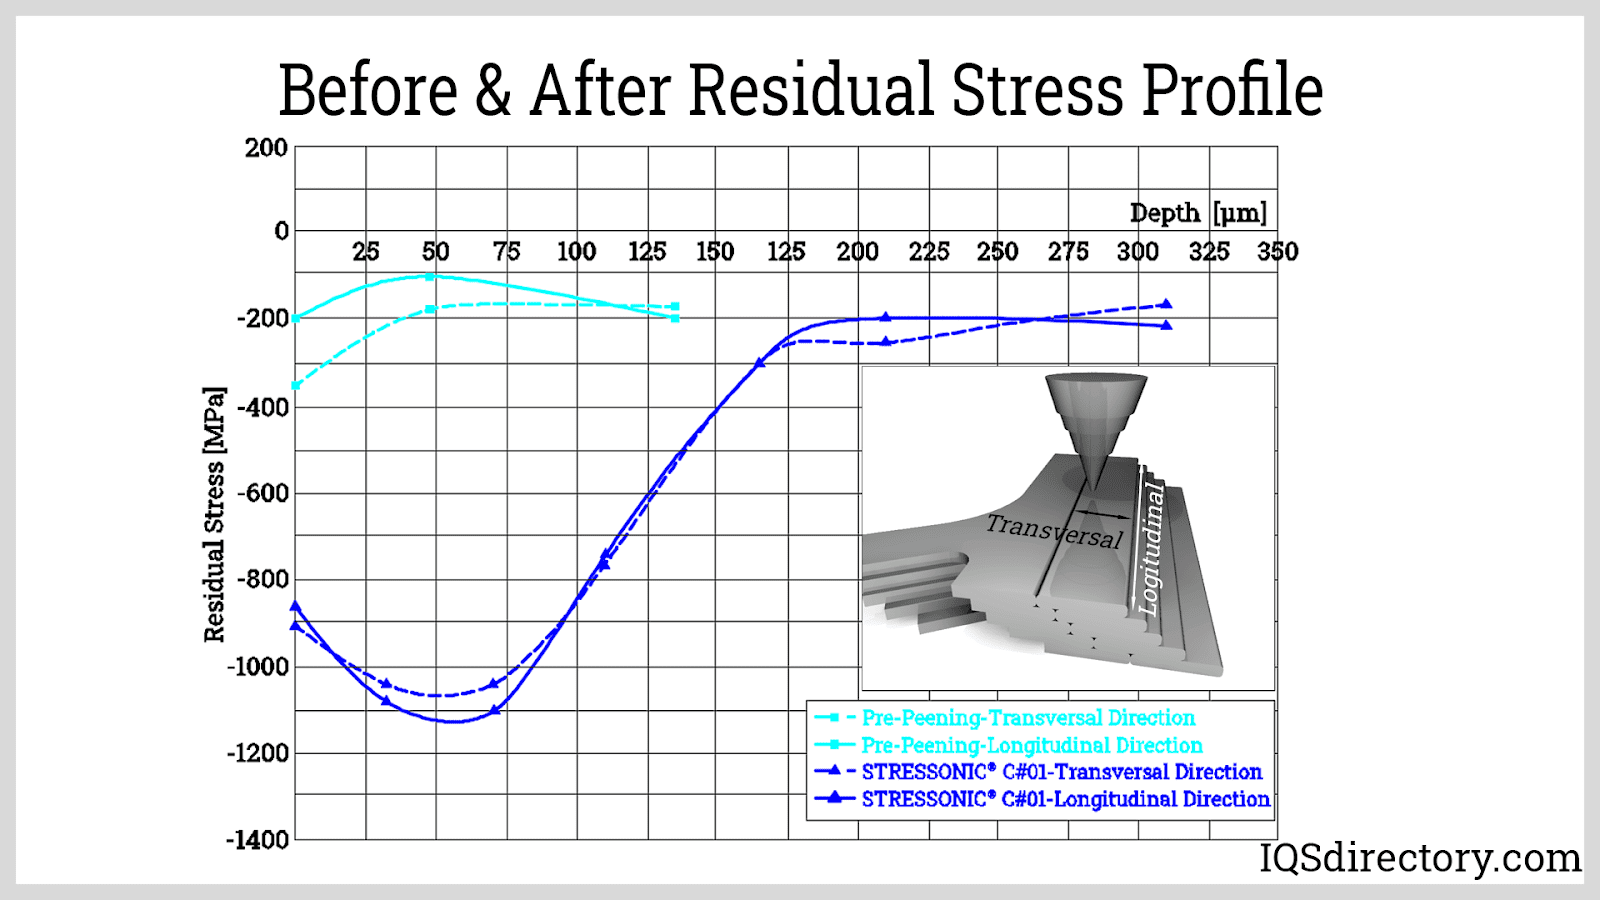 Before & After Residual Stress Profile